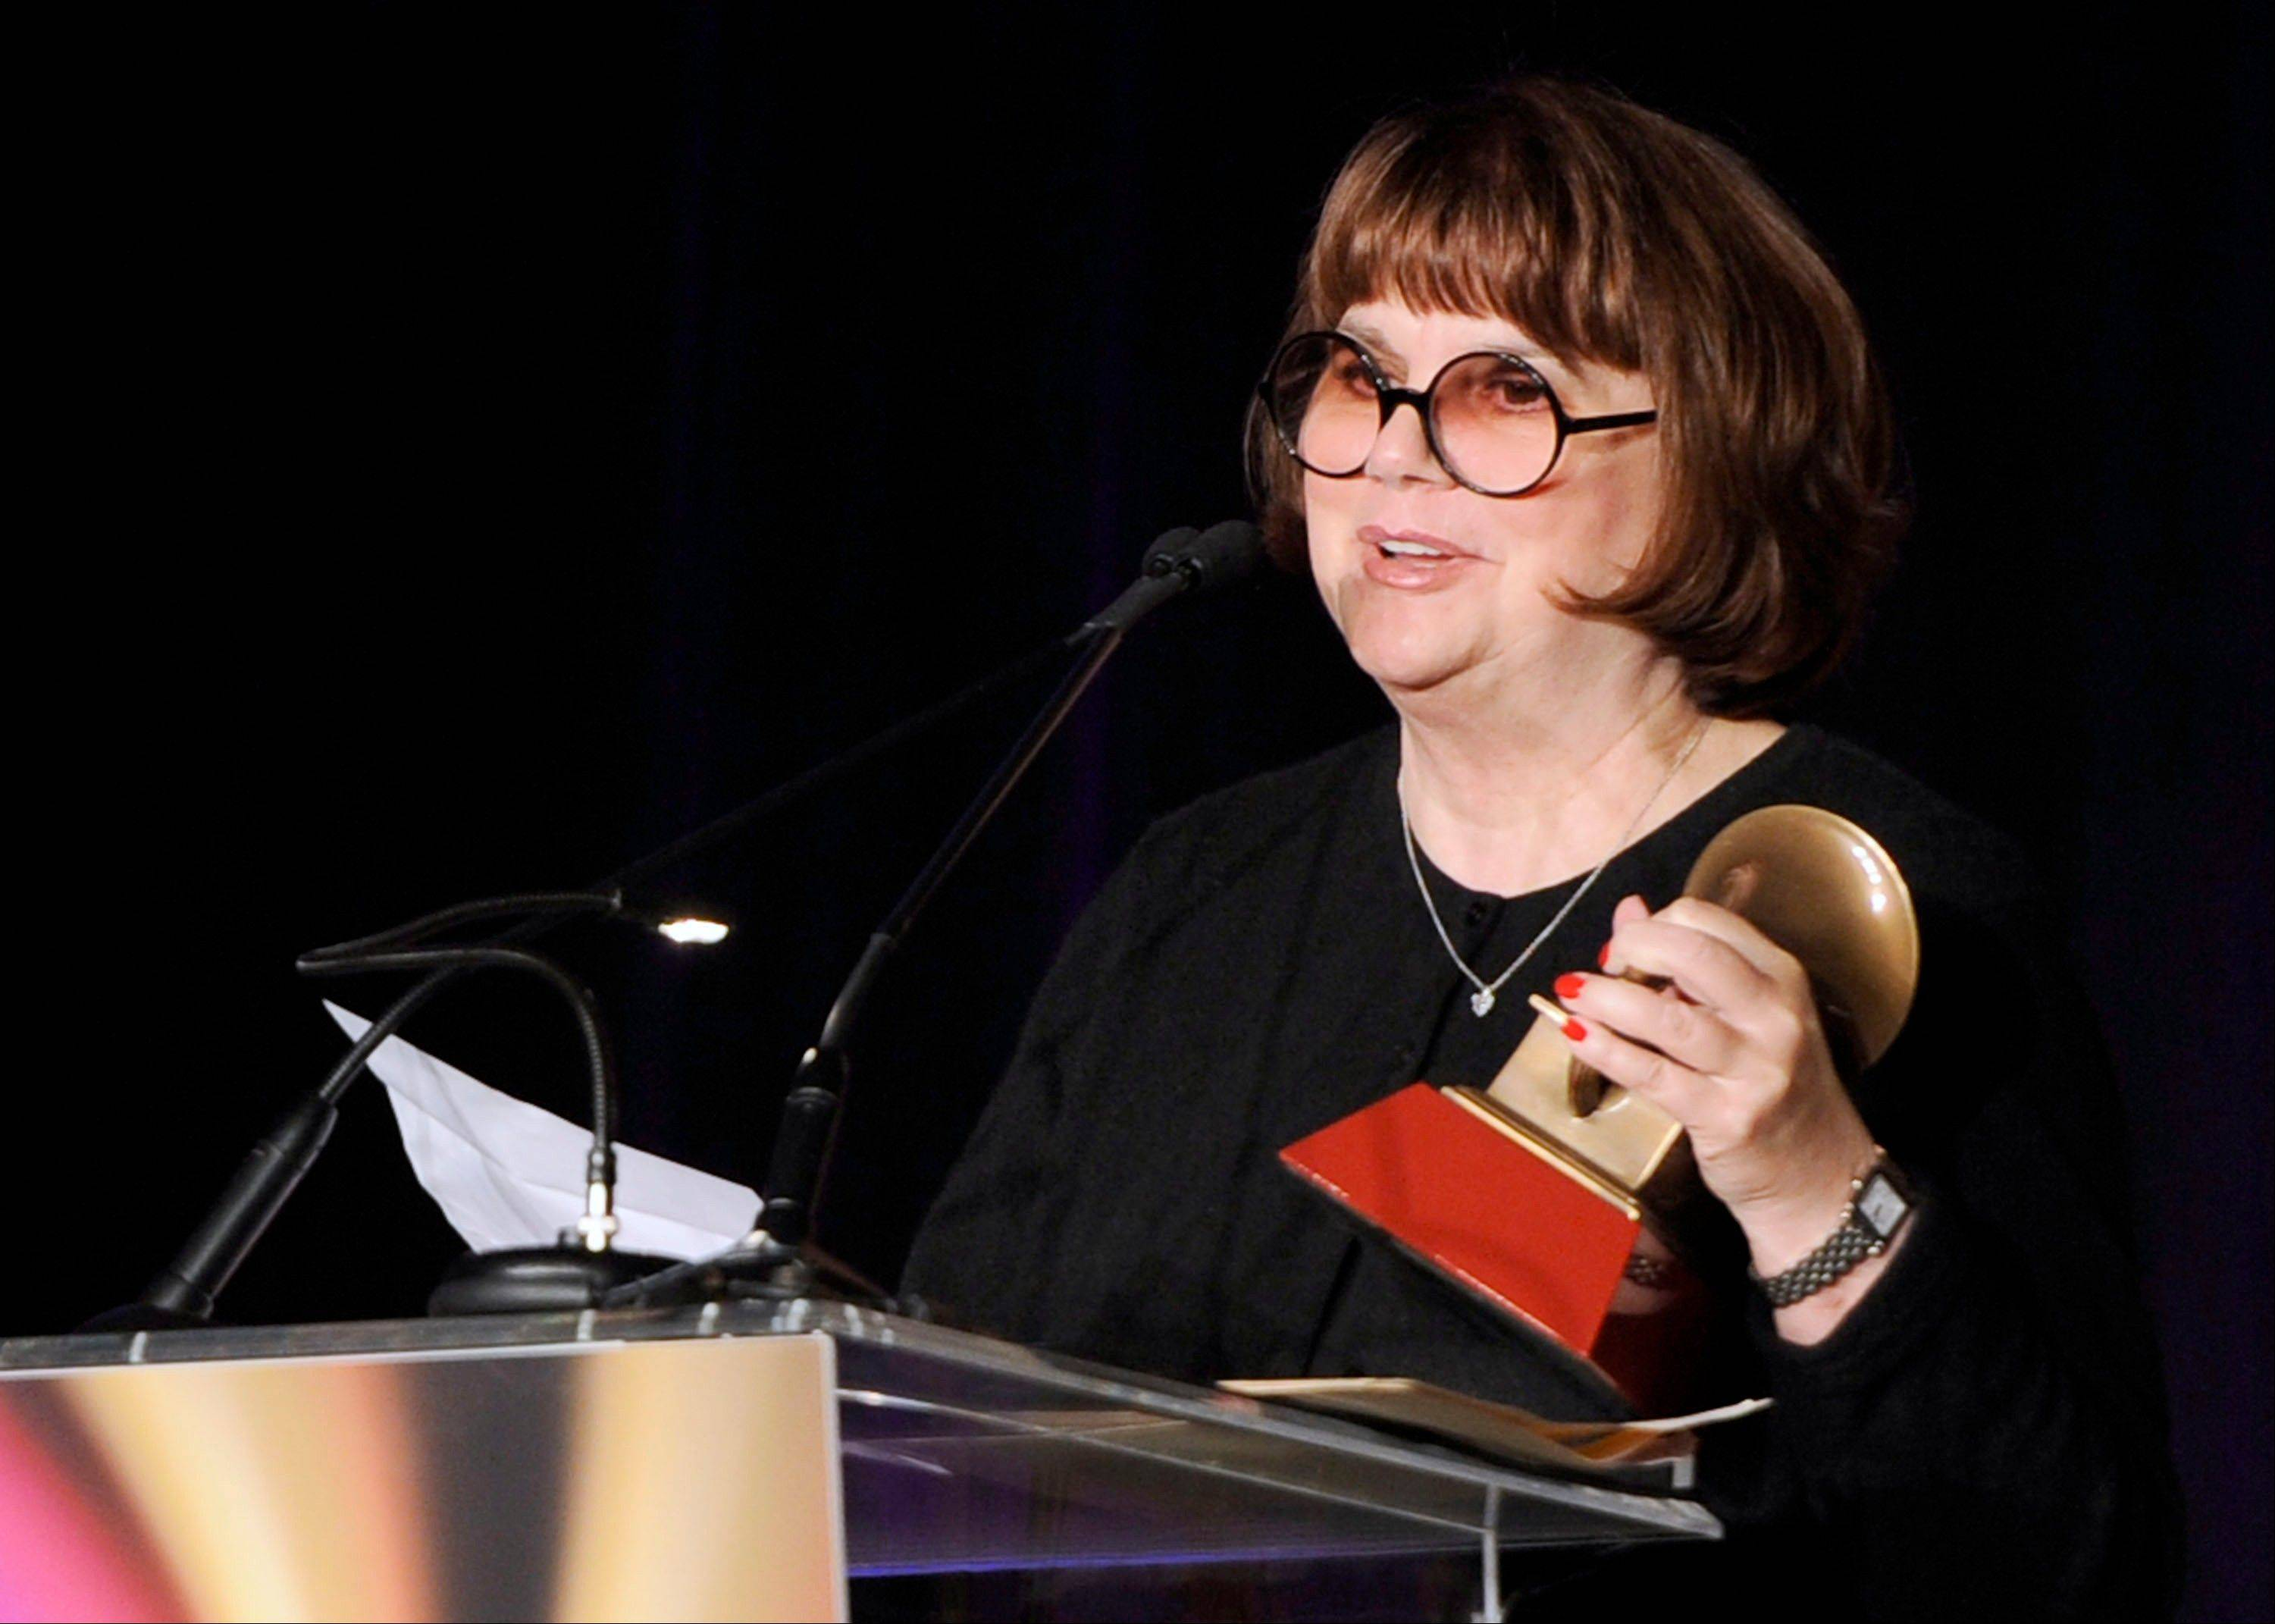 In 2011, Linda Ronstadt accepts the Life Time Achievement award at the Latin Recording Academy Lifetime Achievement Award and Trustees Award ceremony in Las Vegas.